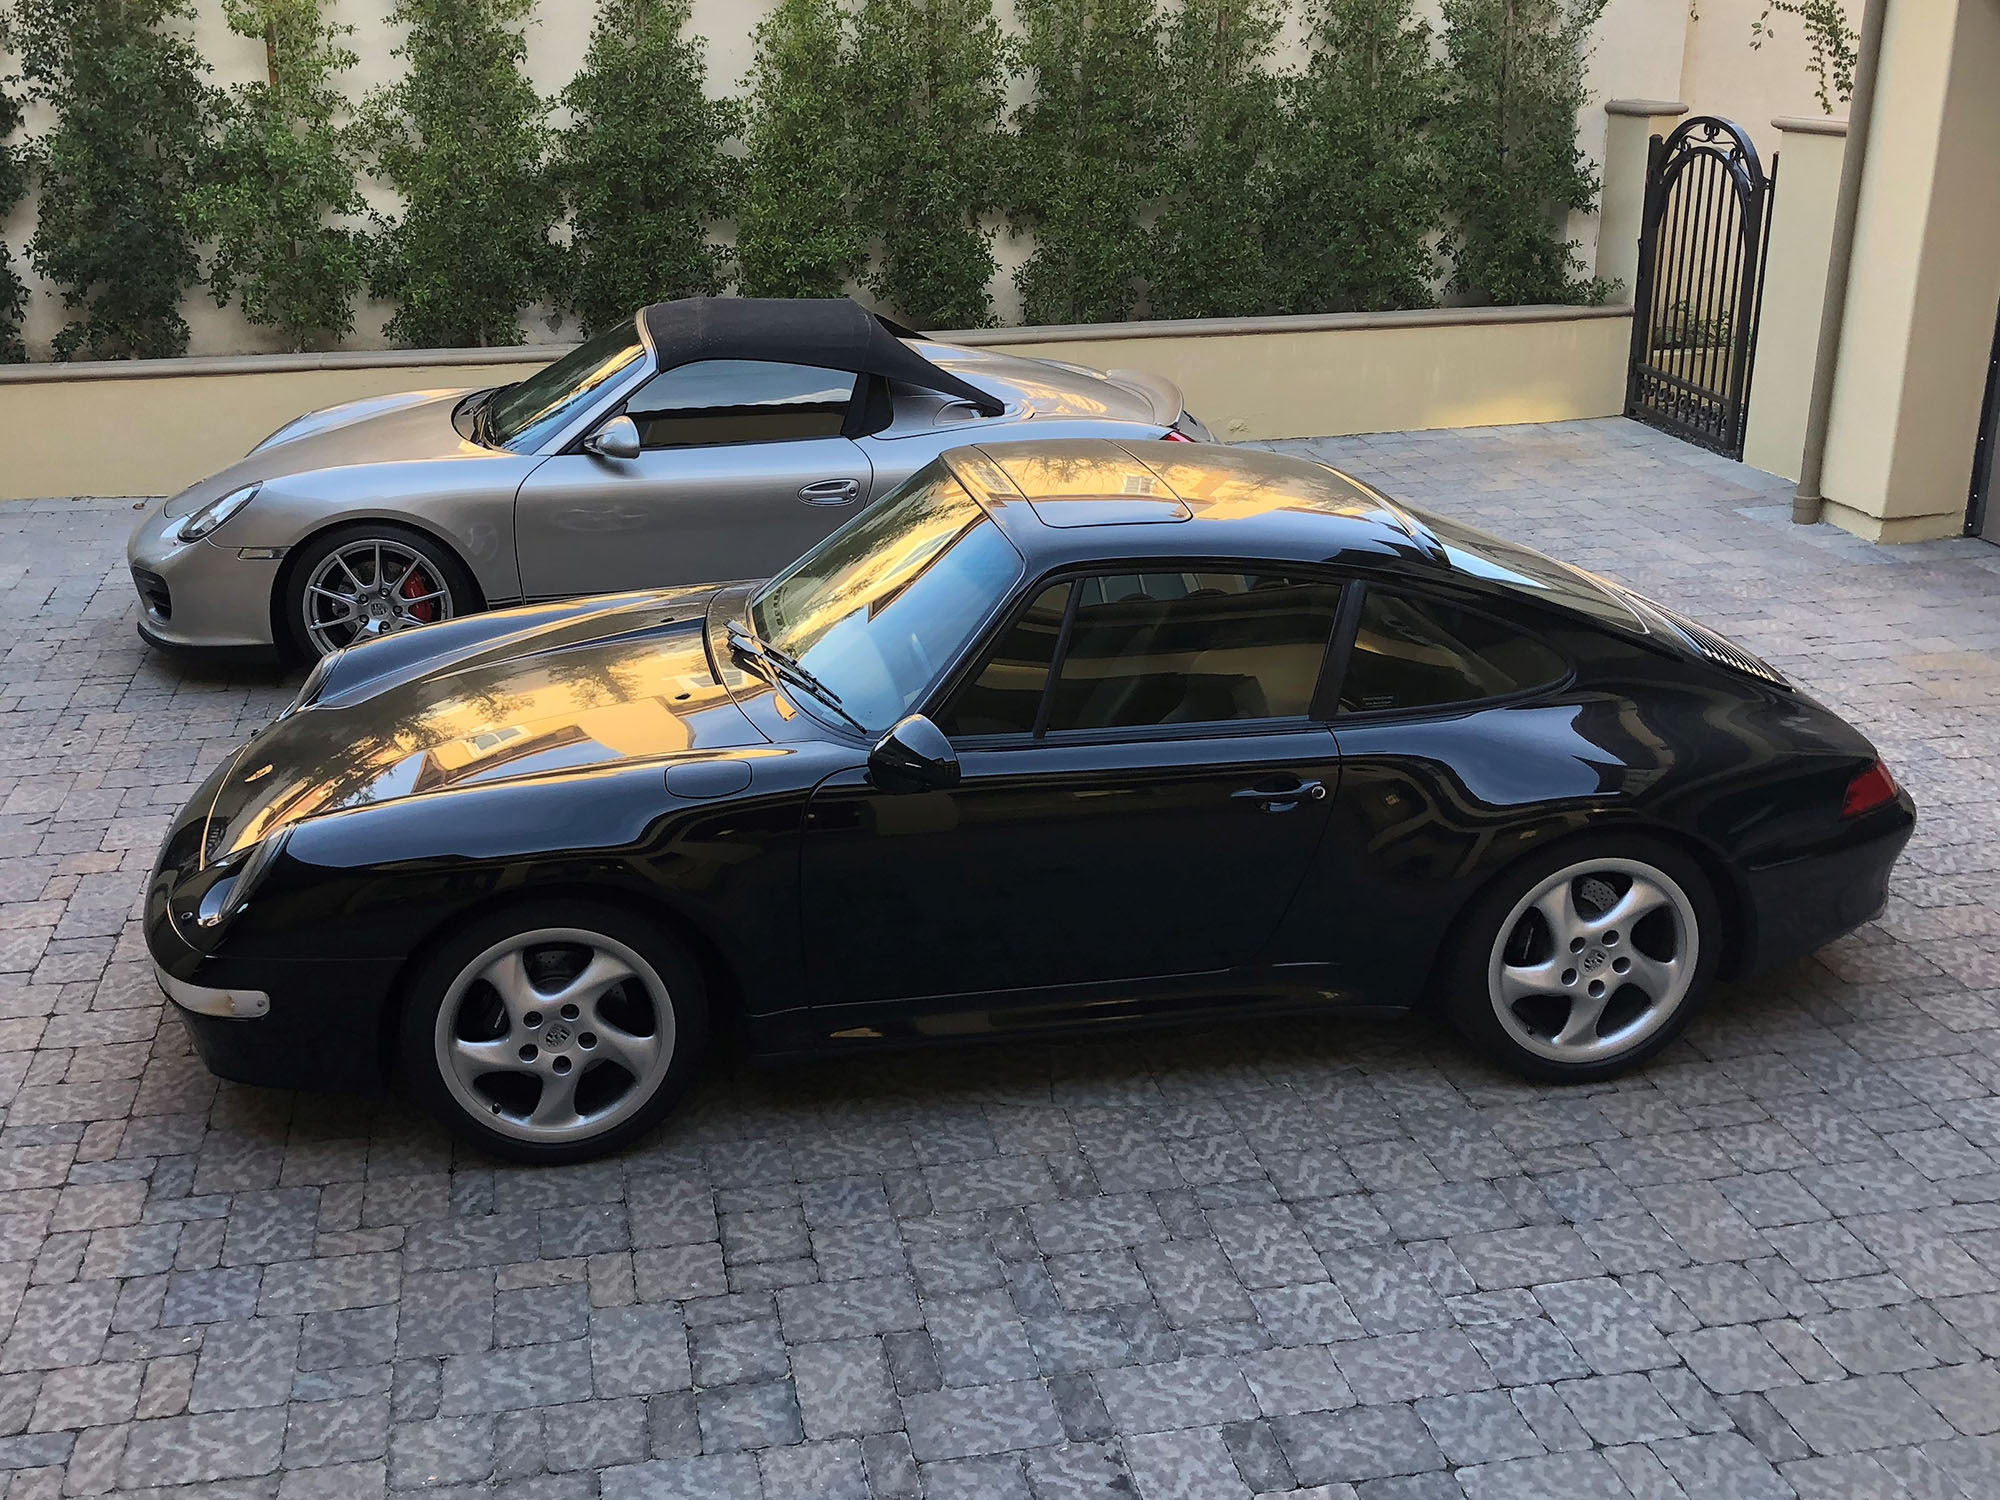 1997 Porsche 911 Carrera S Coupe in Black